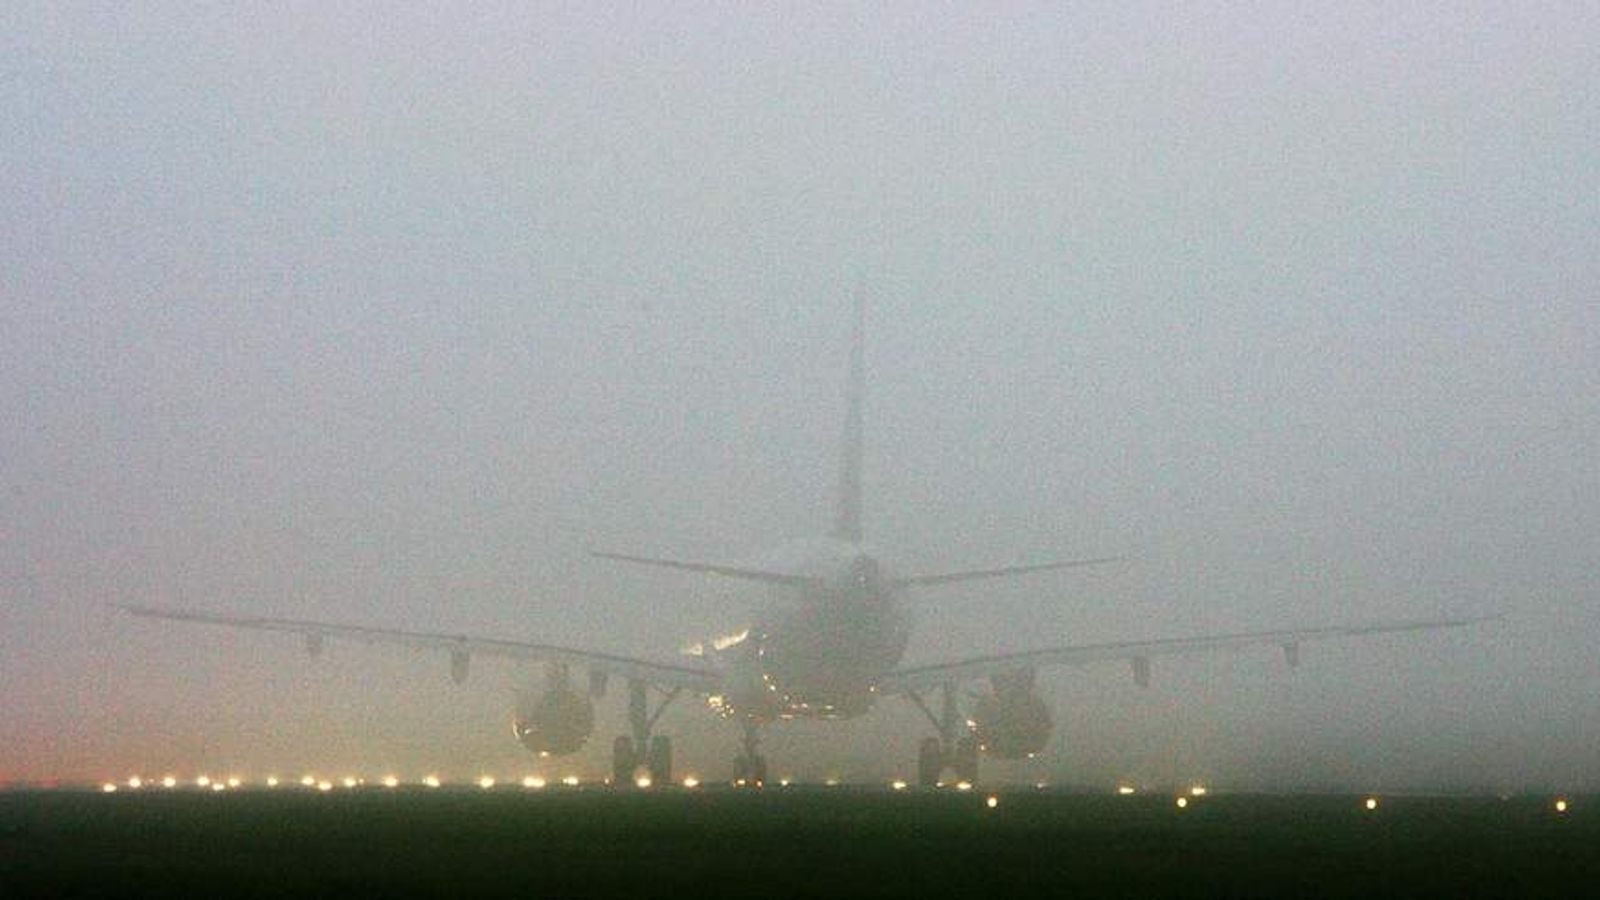 An aircraft is enveloped by fog in Heathrow. (File picture)